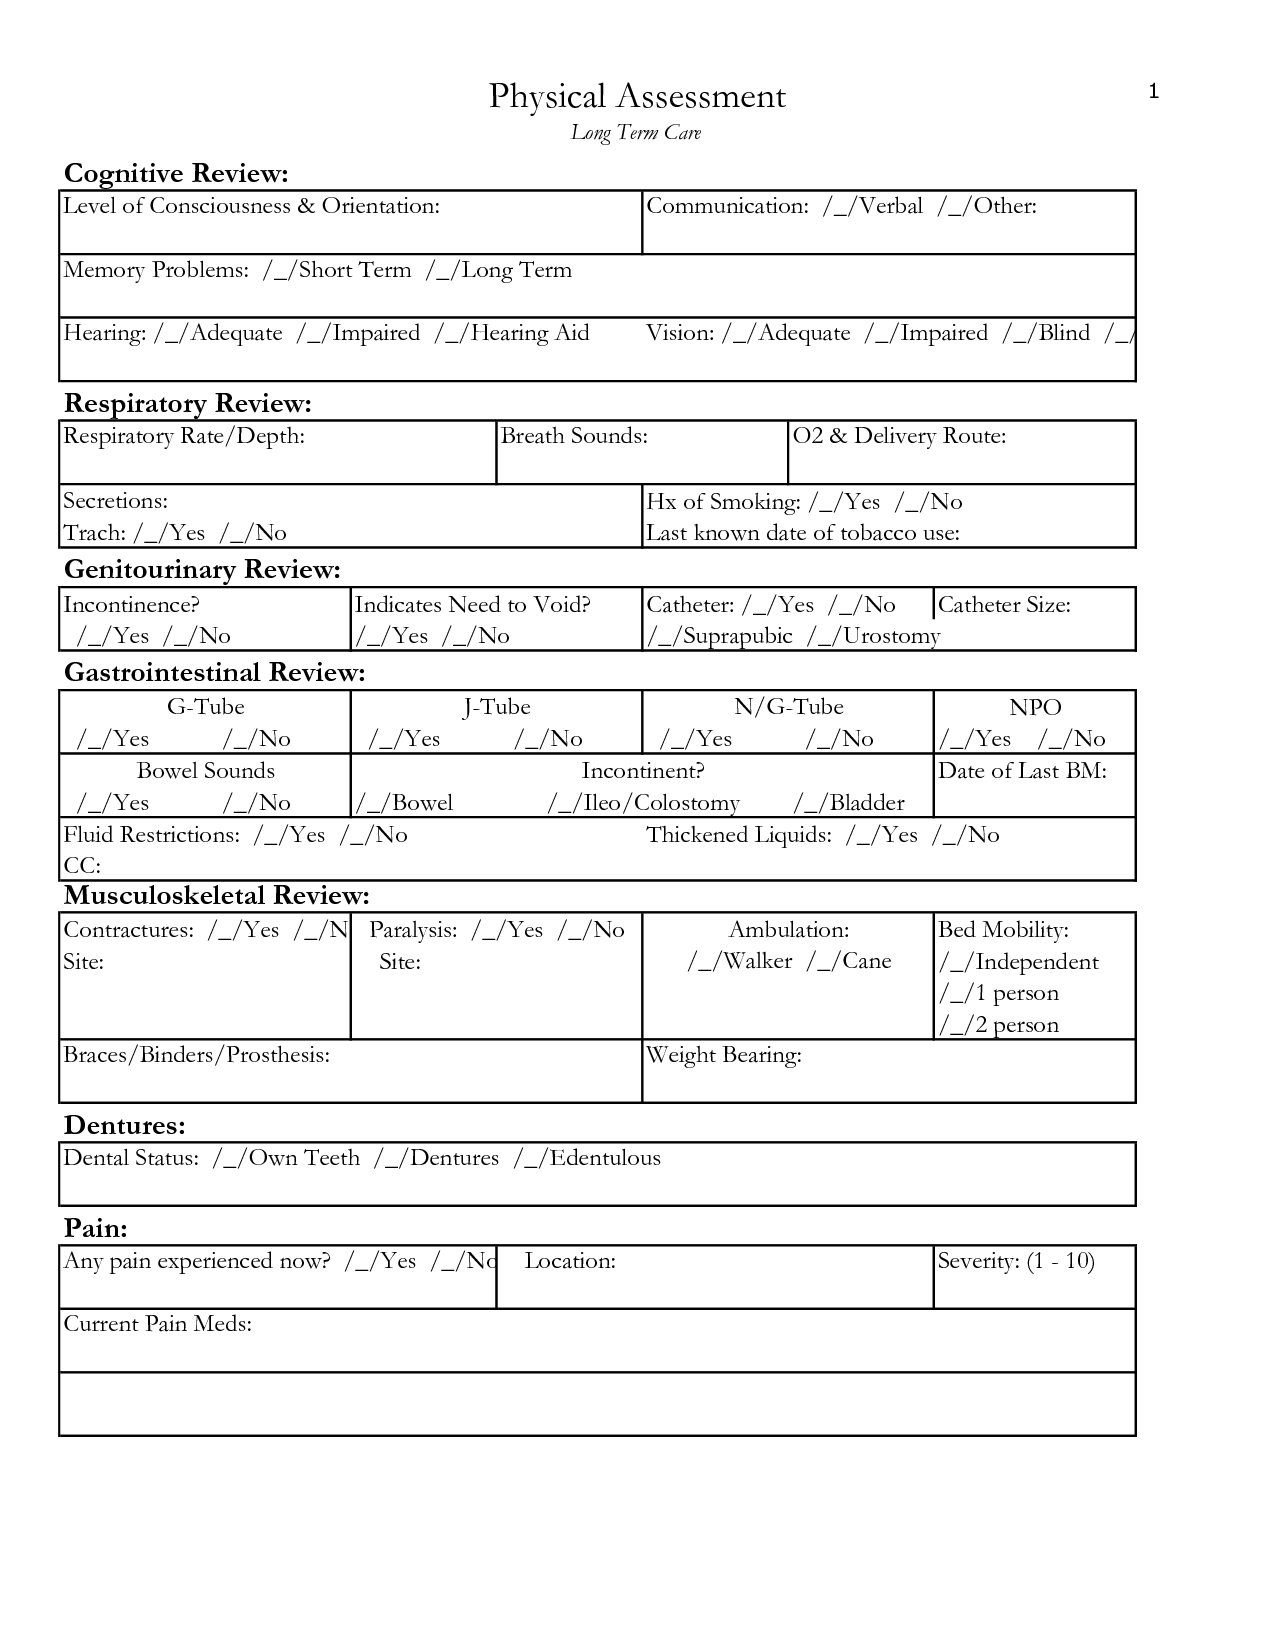 Nursing Physical Assessment Form Templates